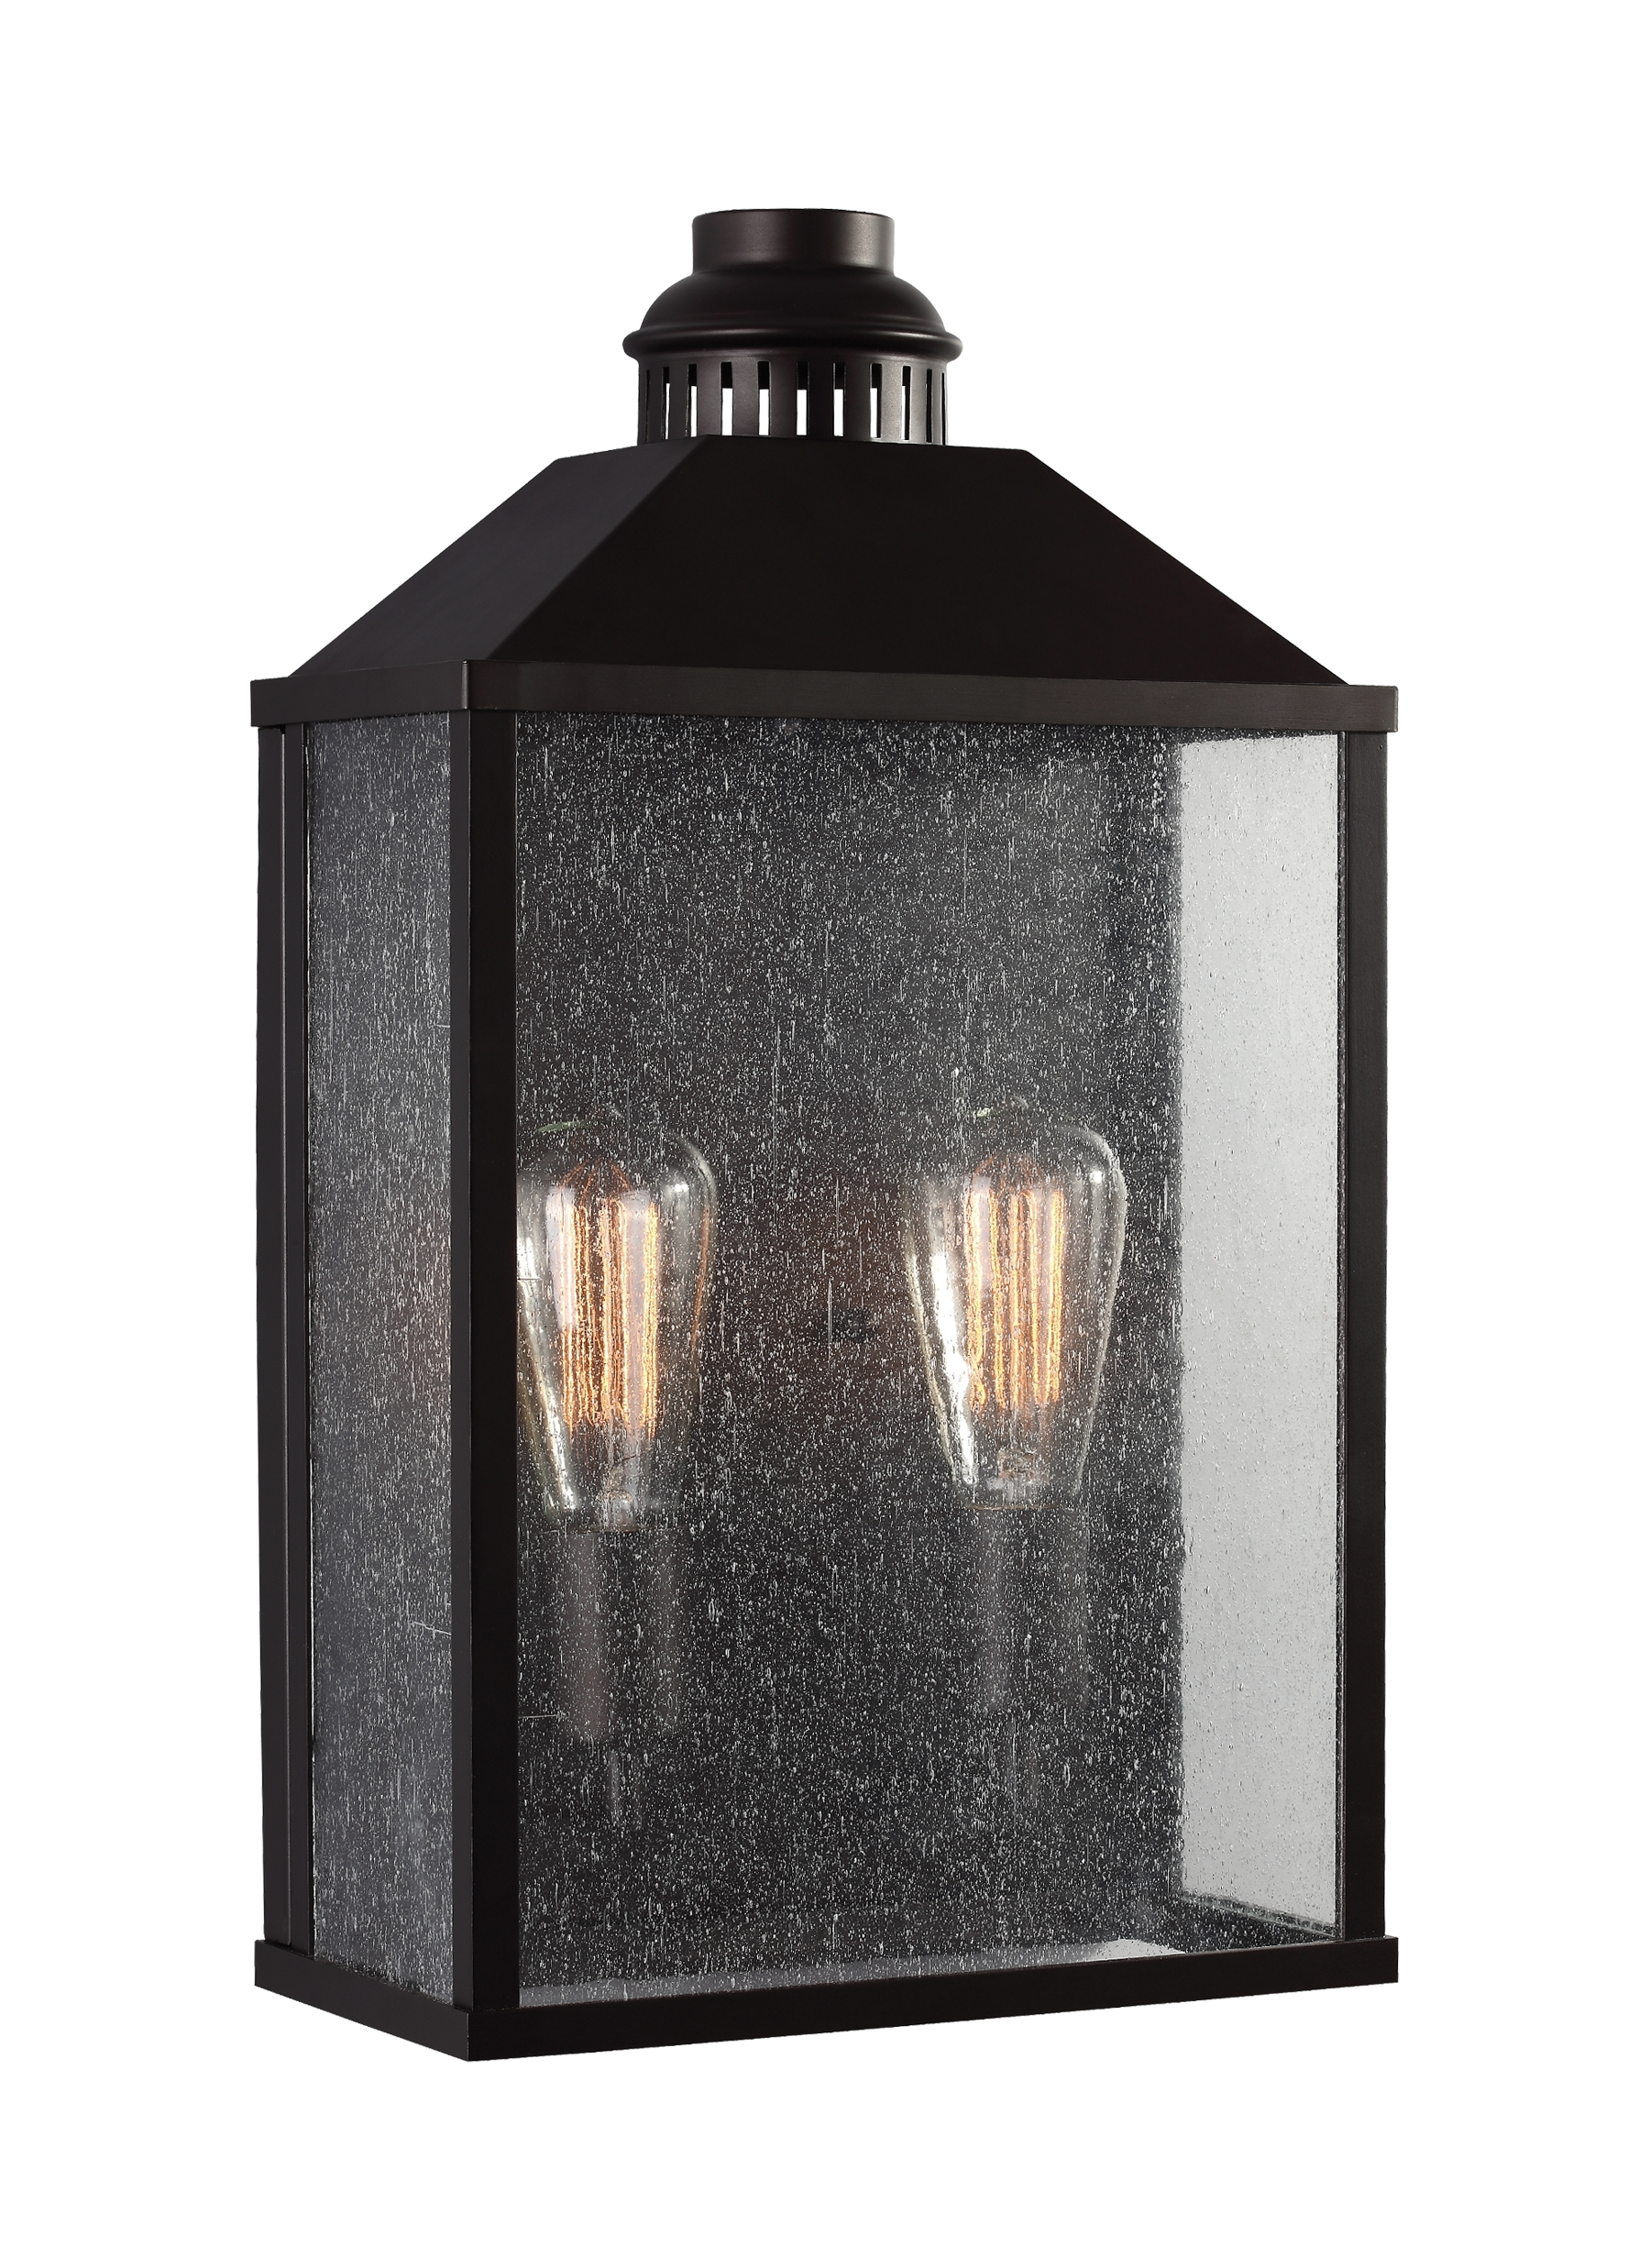 Ol18011Orb,2 - Light Outdoor Wall Sconce,oil Rubbed Bronze intended for Outdoor Oil Lanterns for Patio (Image 8 of 20)